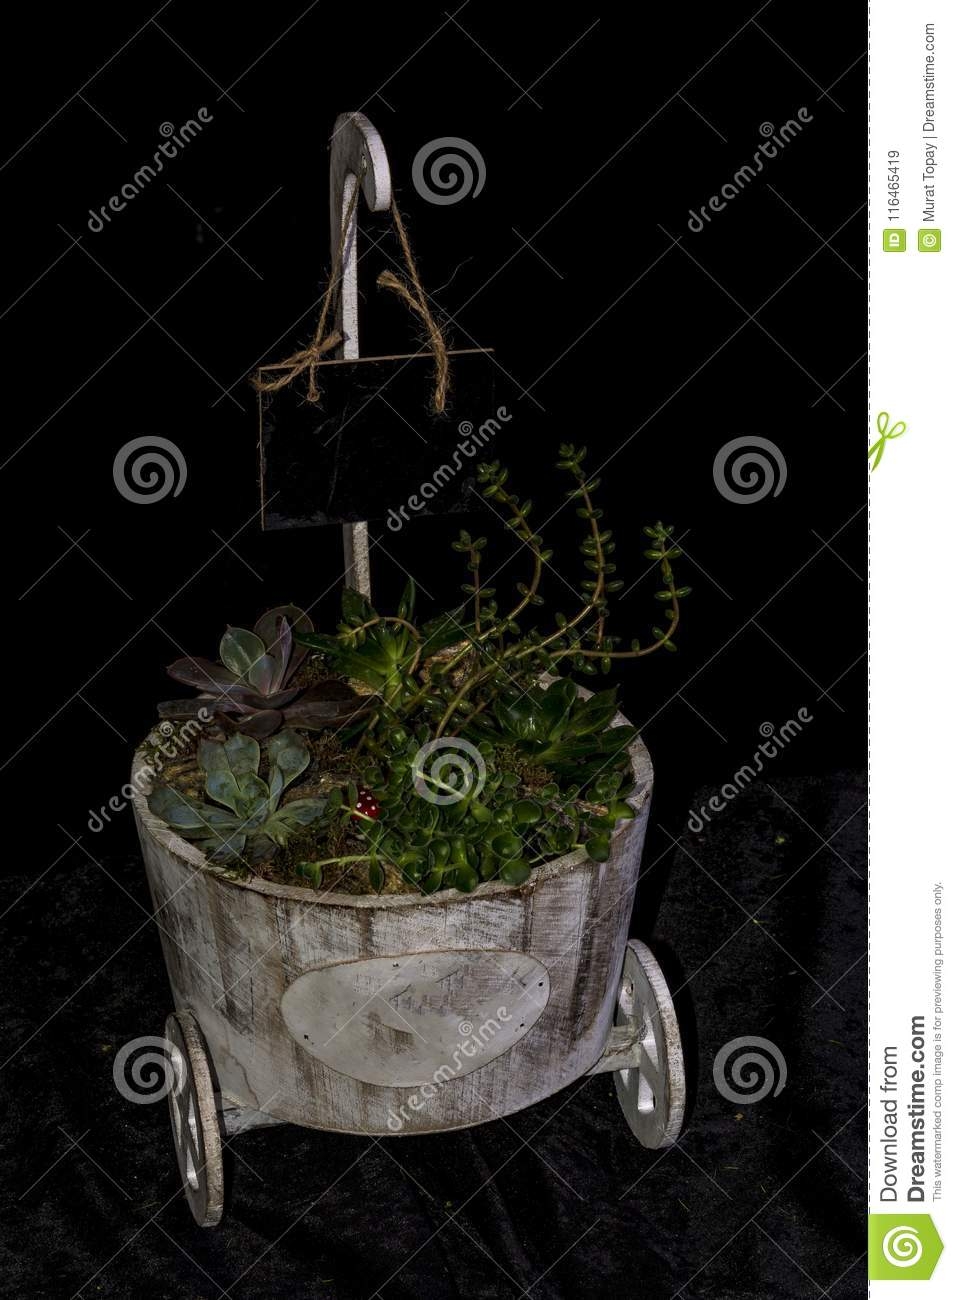 Tropical Gardens Created In Terrarium Glass Containers Stock Image